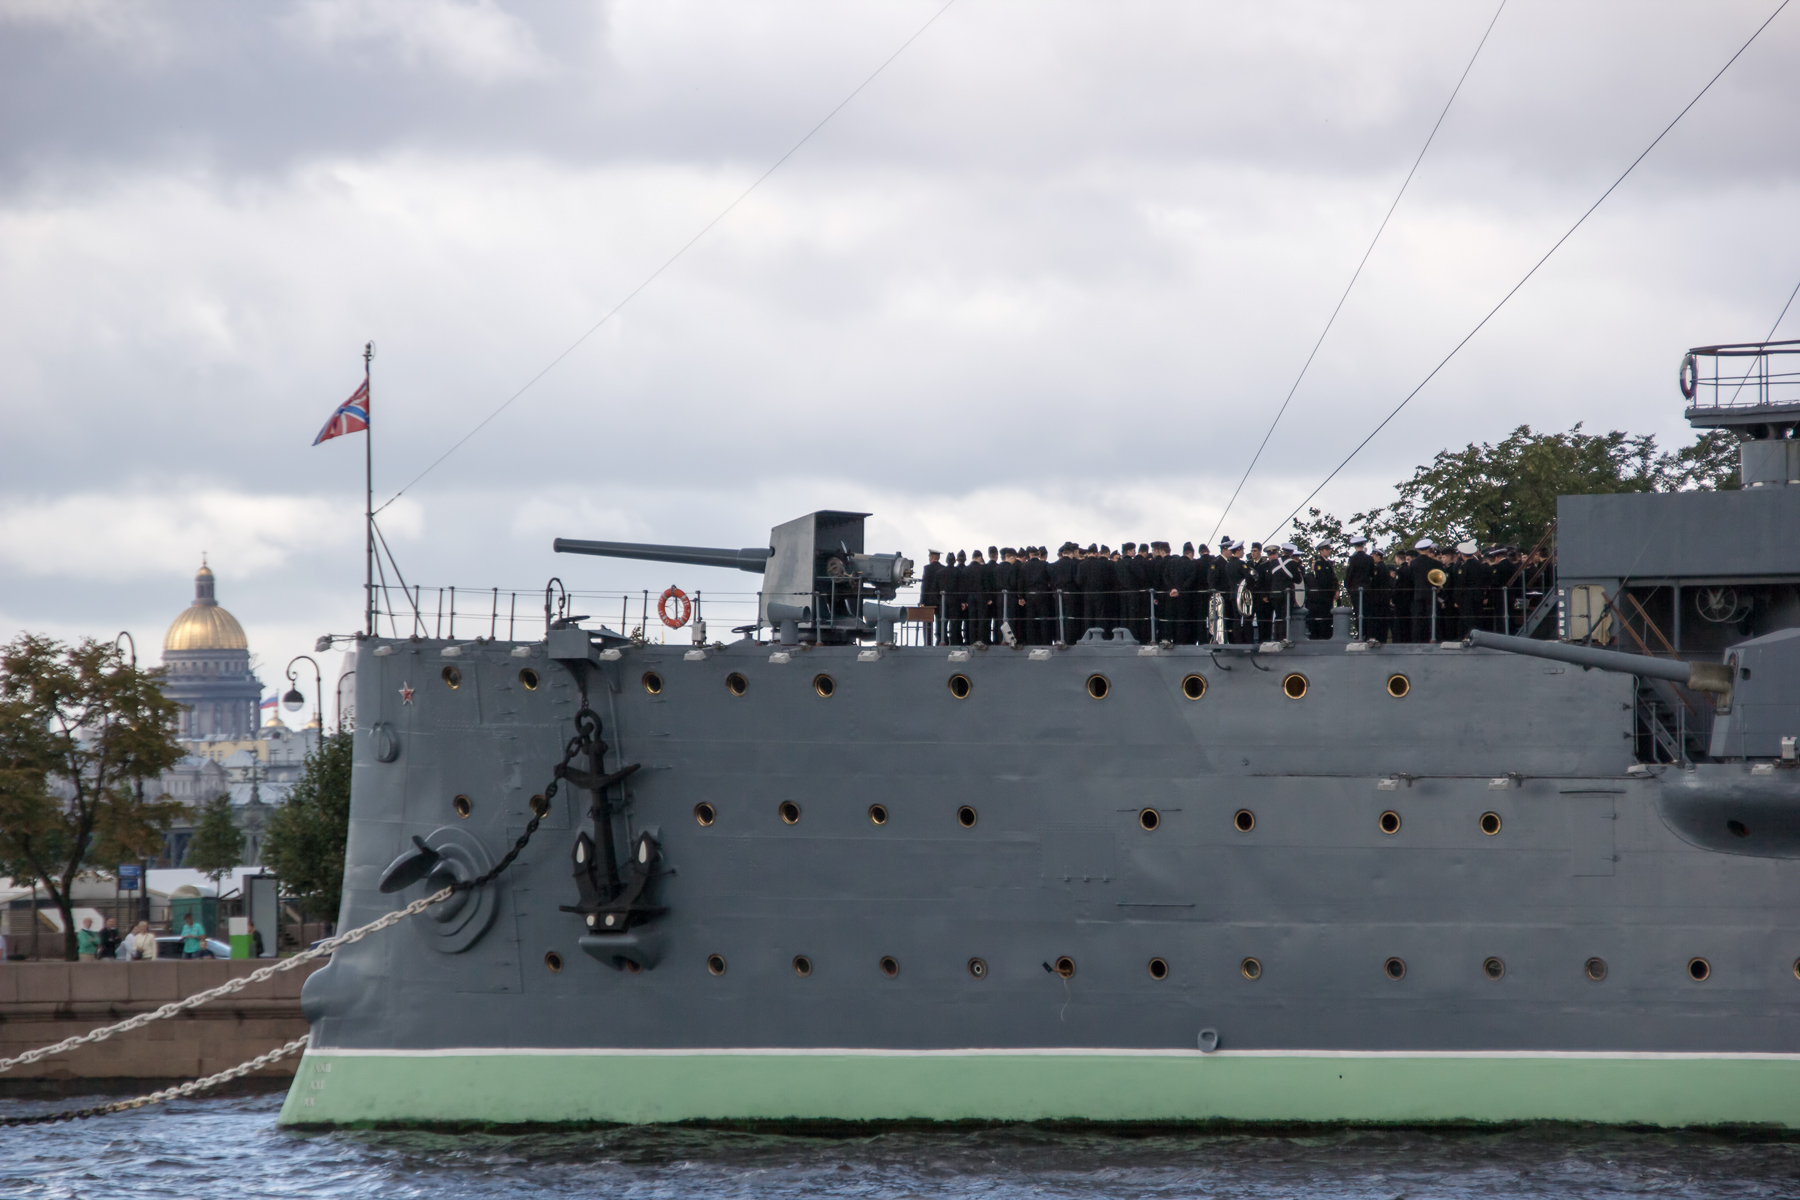 Cruiser aurora photo